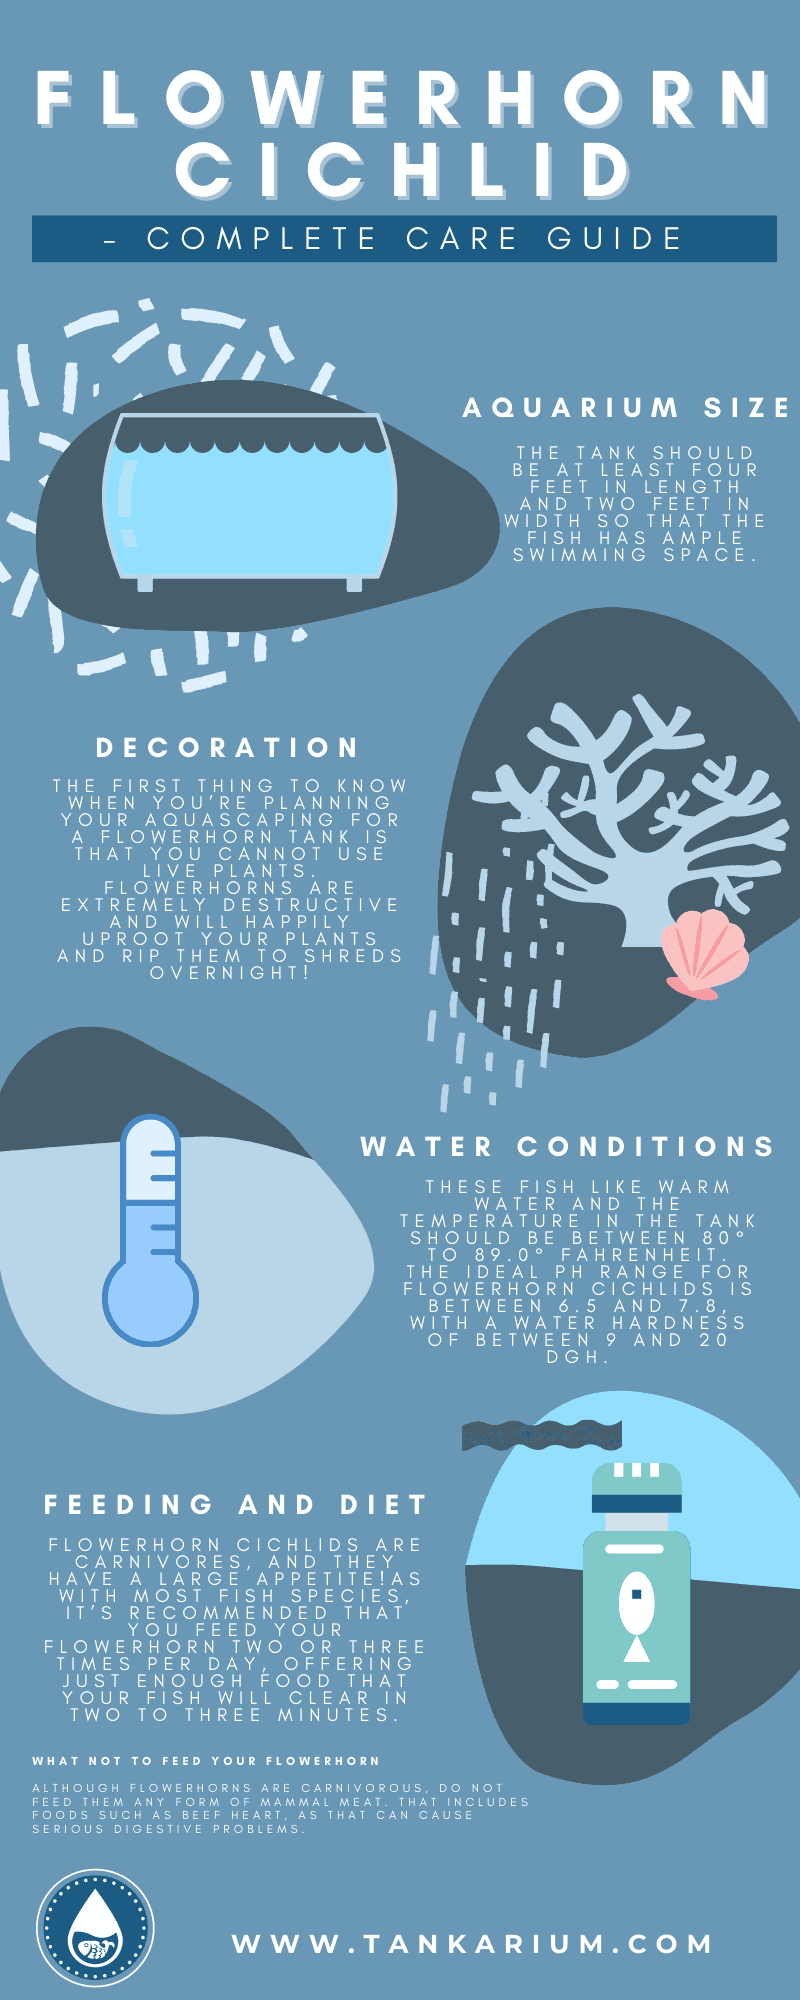 Flowerhorn Cichlid - Complete Care Guide-infographic